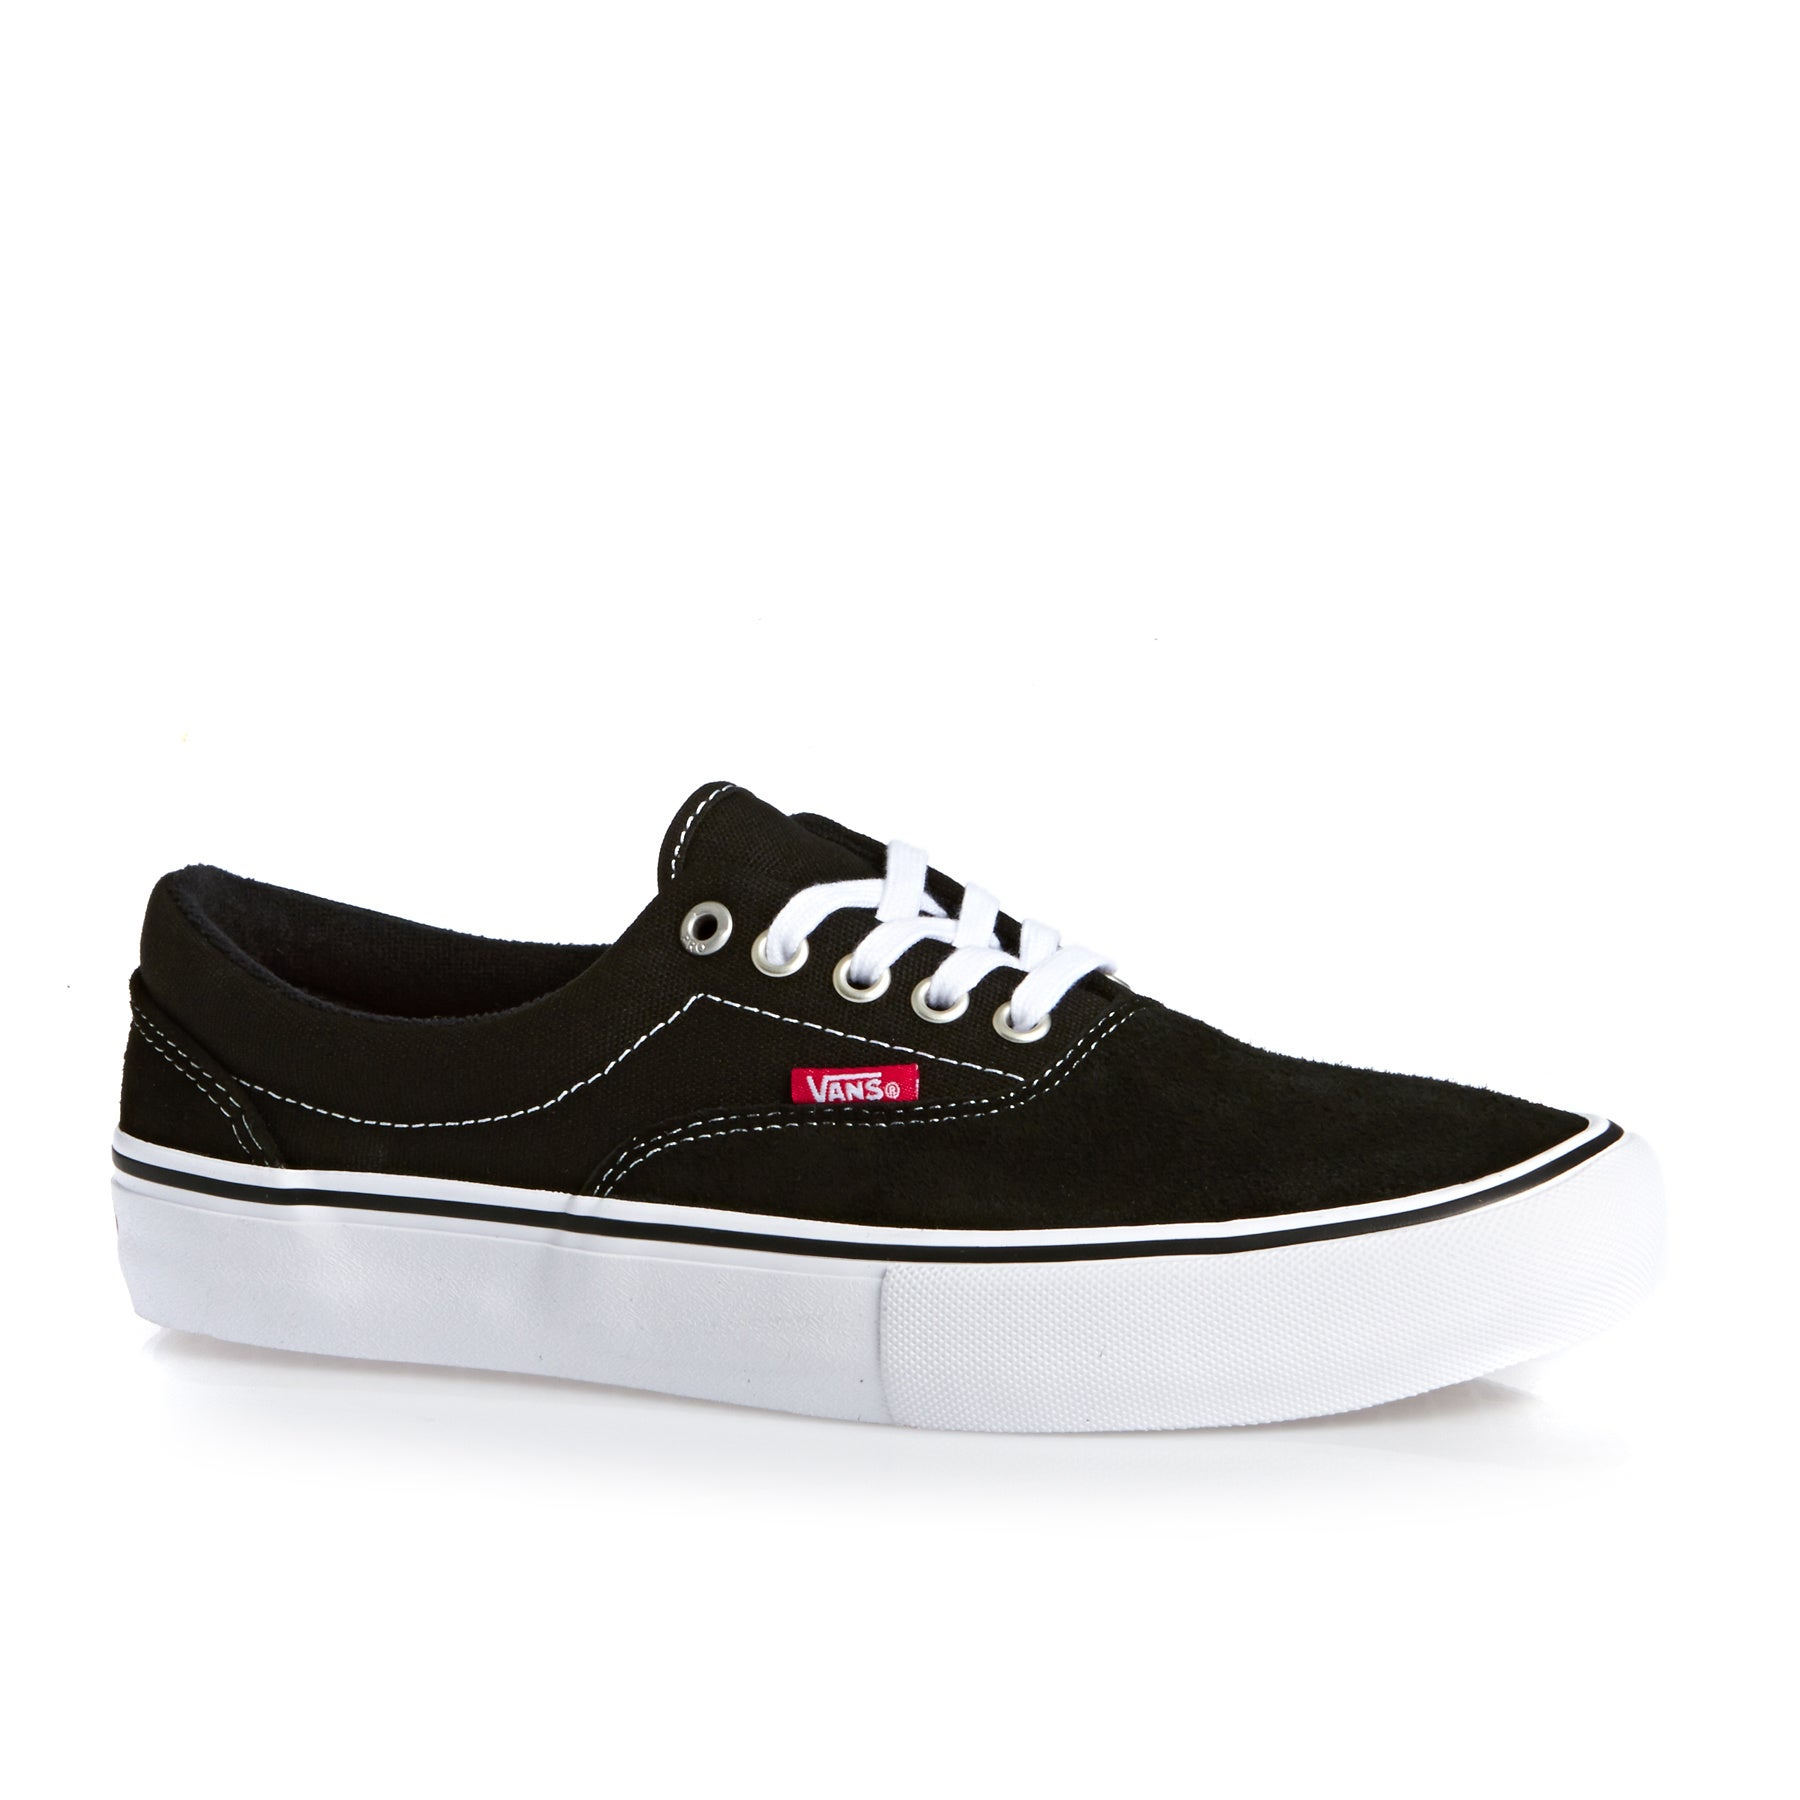 2085c46abc Vans Era Pro Shoes available from Surfdome